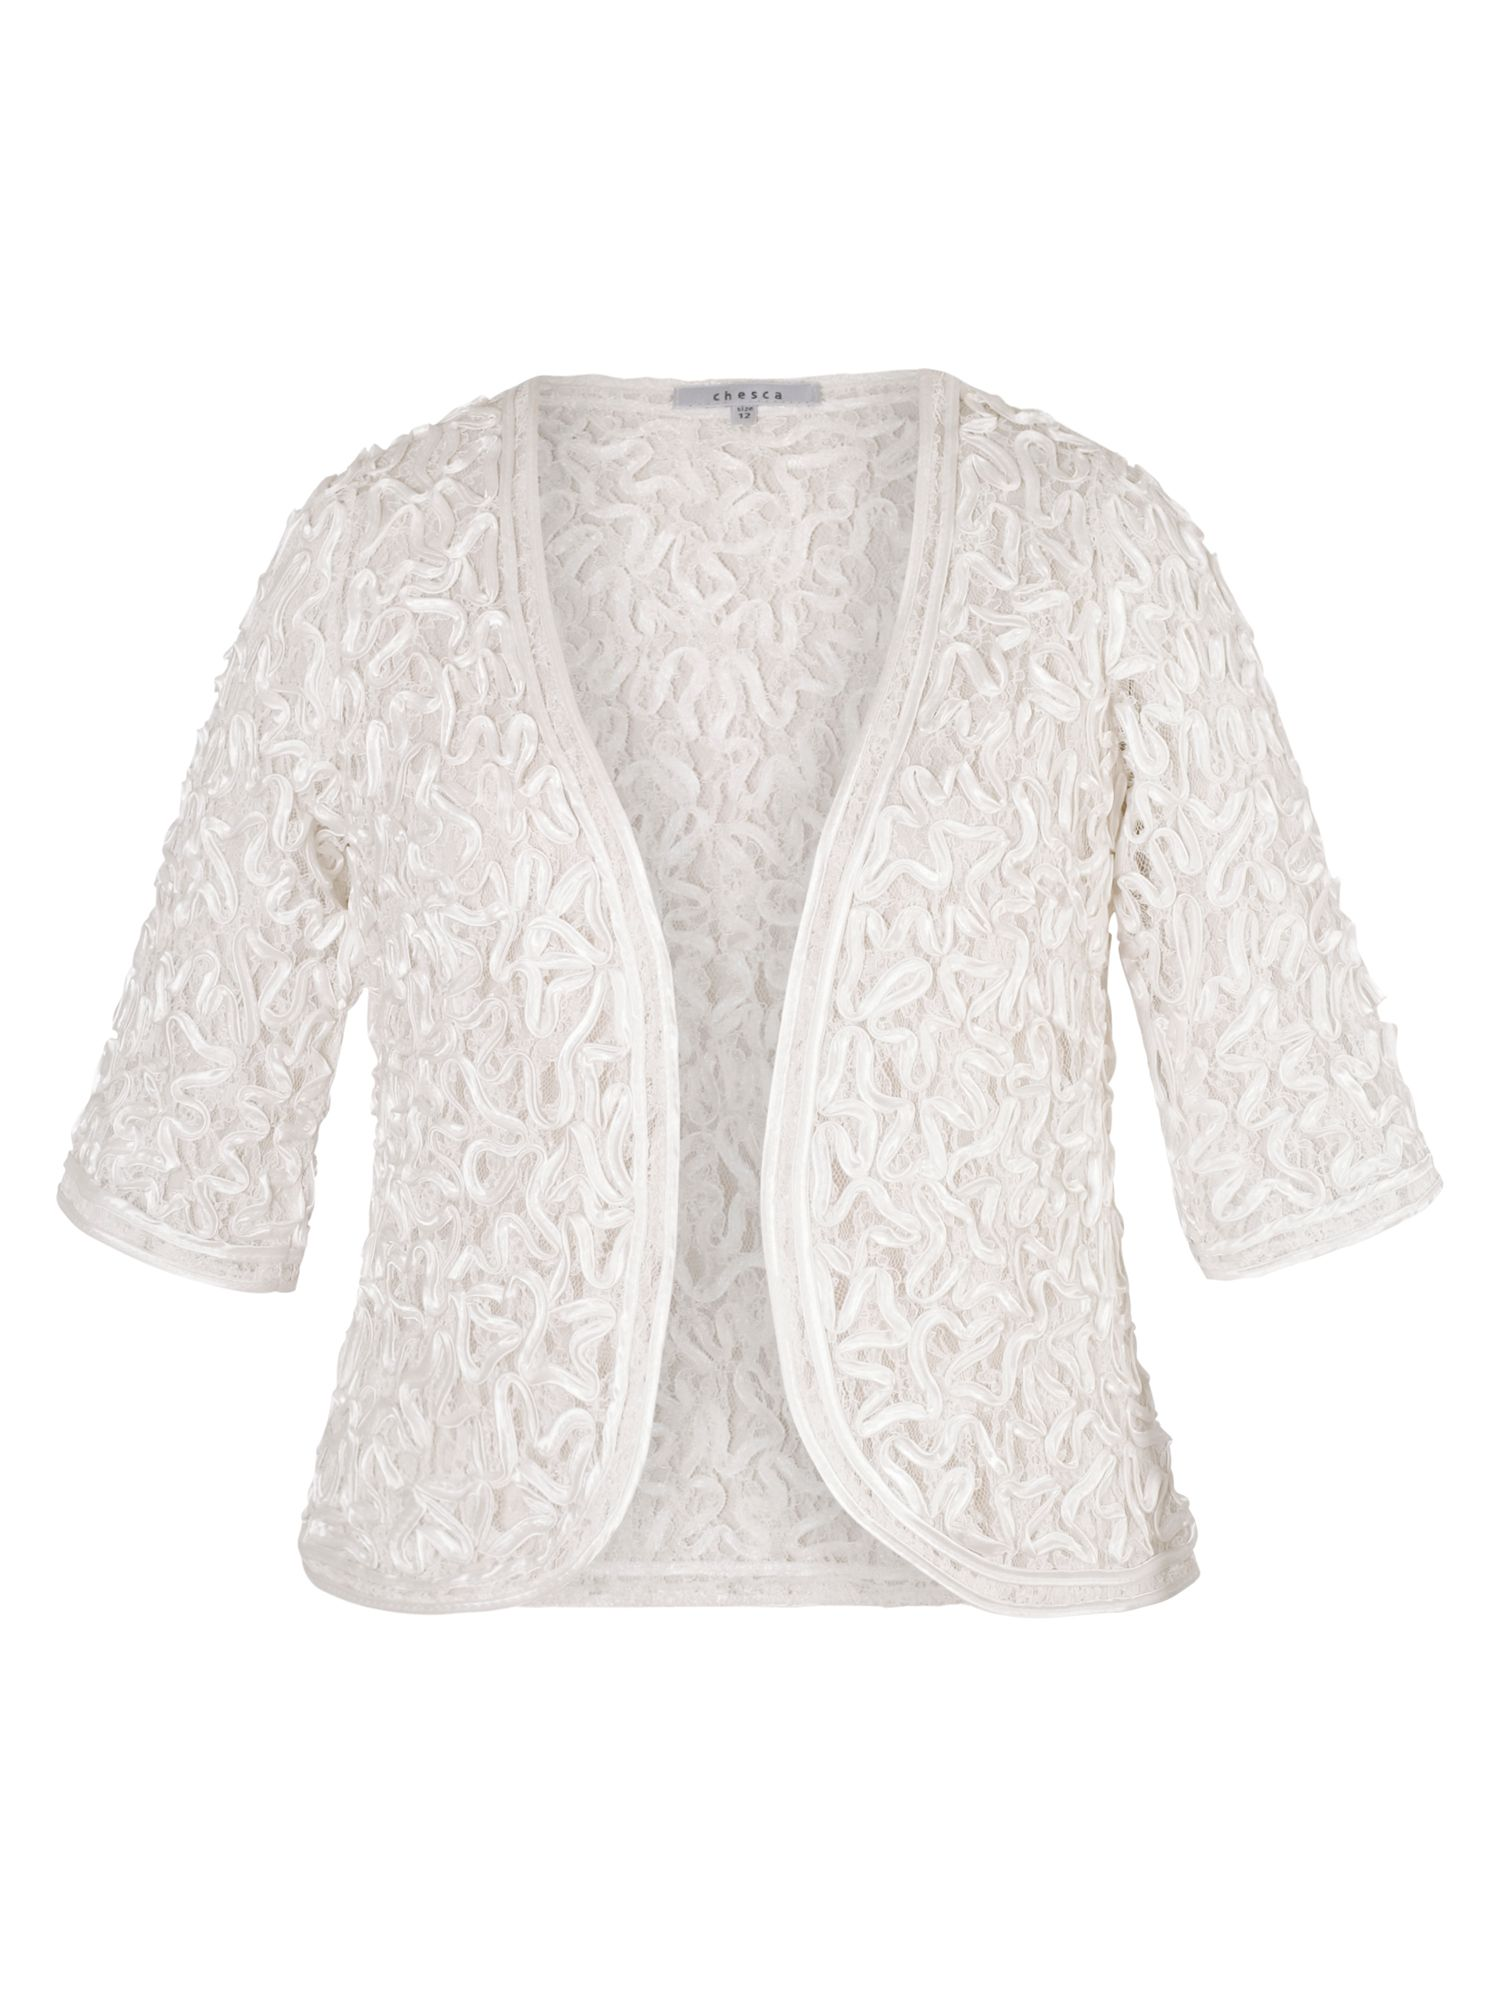 Chesca Satin Cornelli Lace Bolero, White